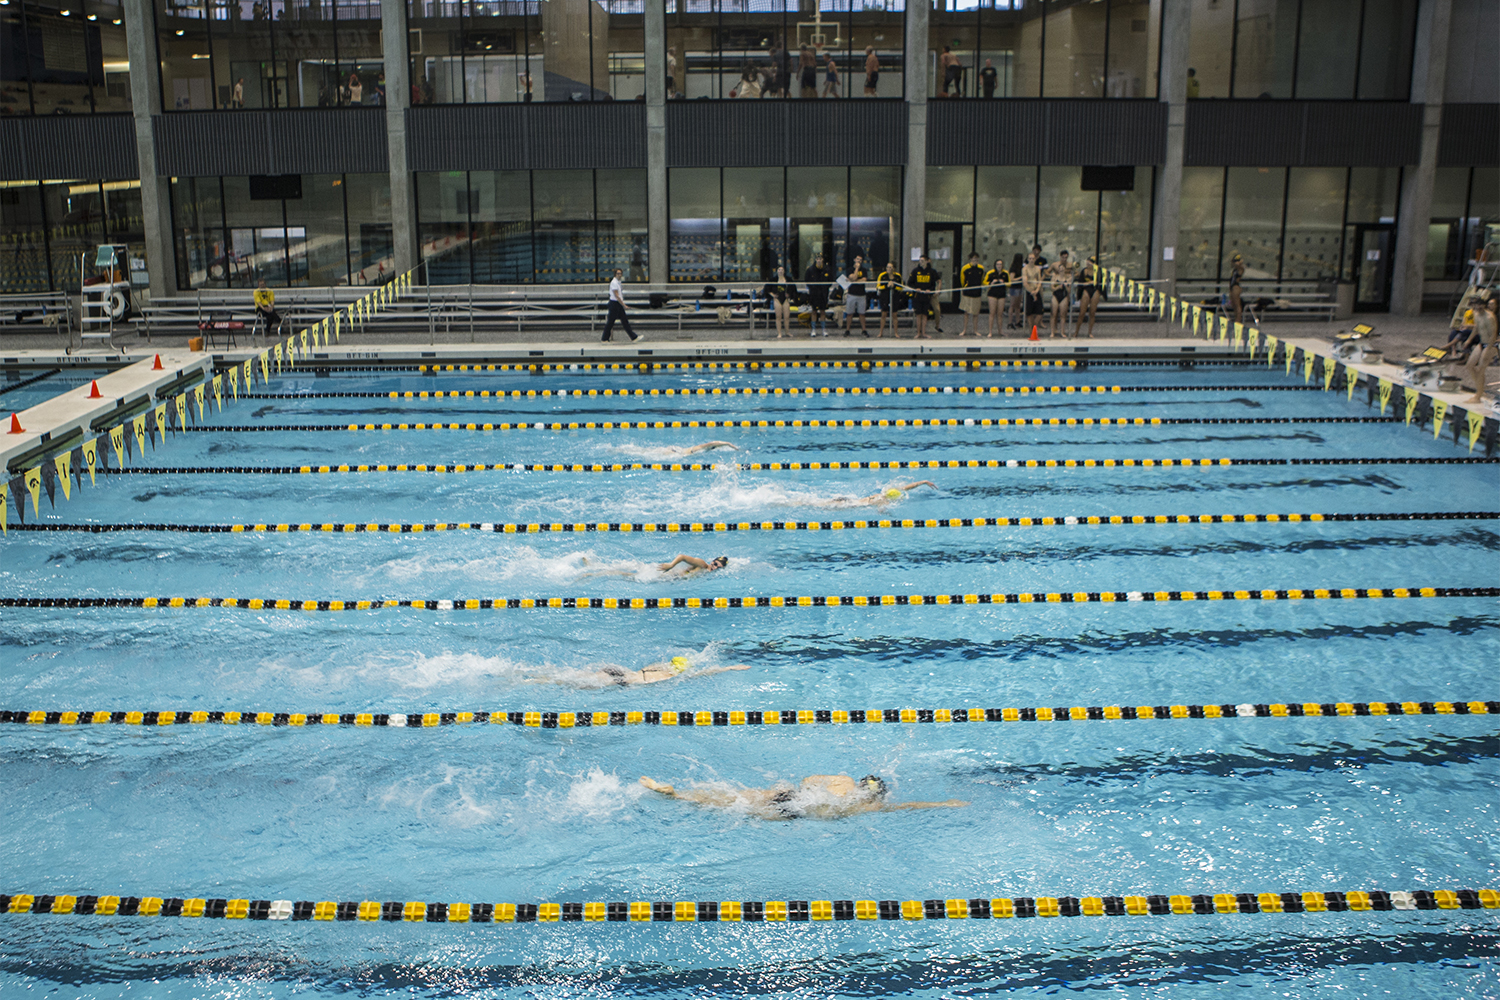 Swimmers+compete+in+the+200+meter+Freestyle+during+the+Iowa+Swimming+and+Diving+Intrasquad+Meet+at+the+Campus+Recreation+and+Wellness+Center+on+Saturday%2C+Sept.+29%2C+2018.